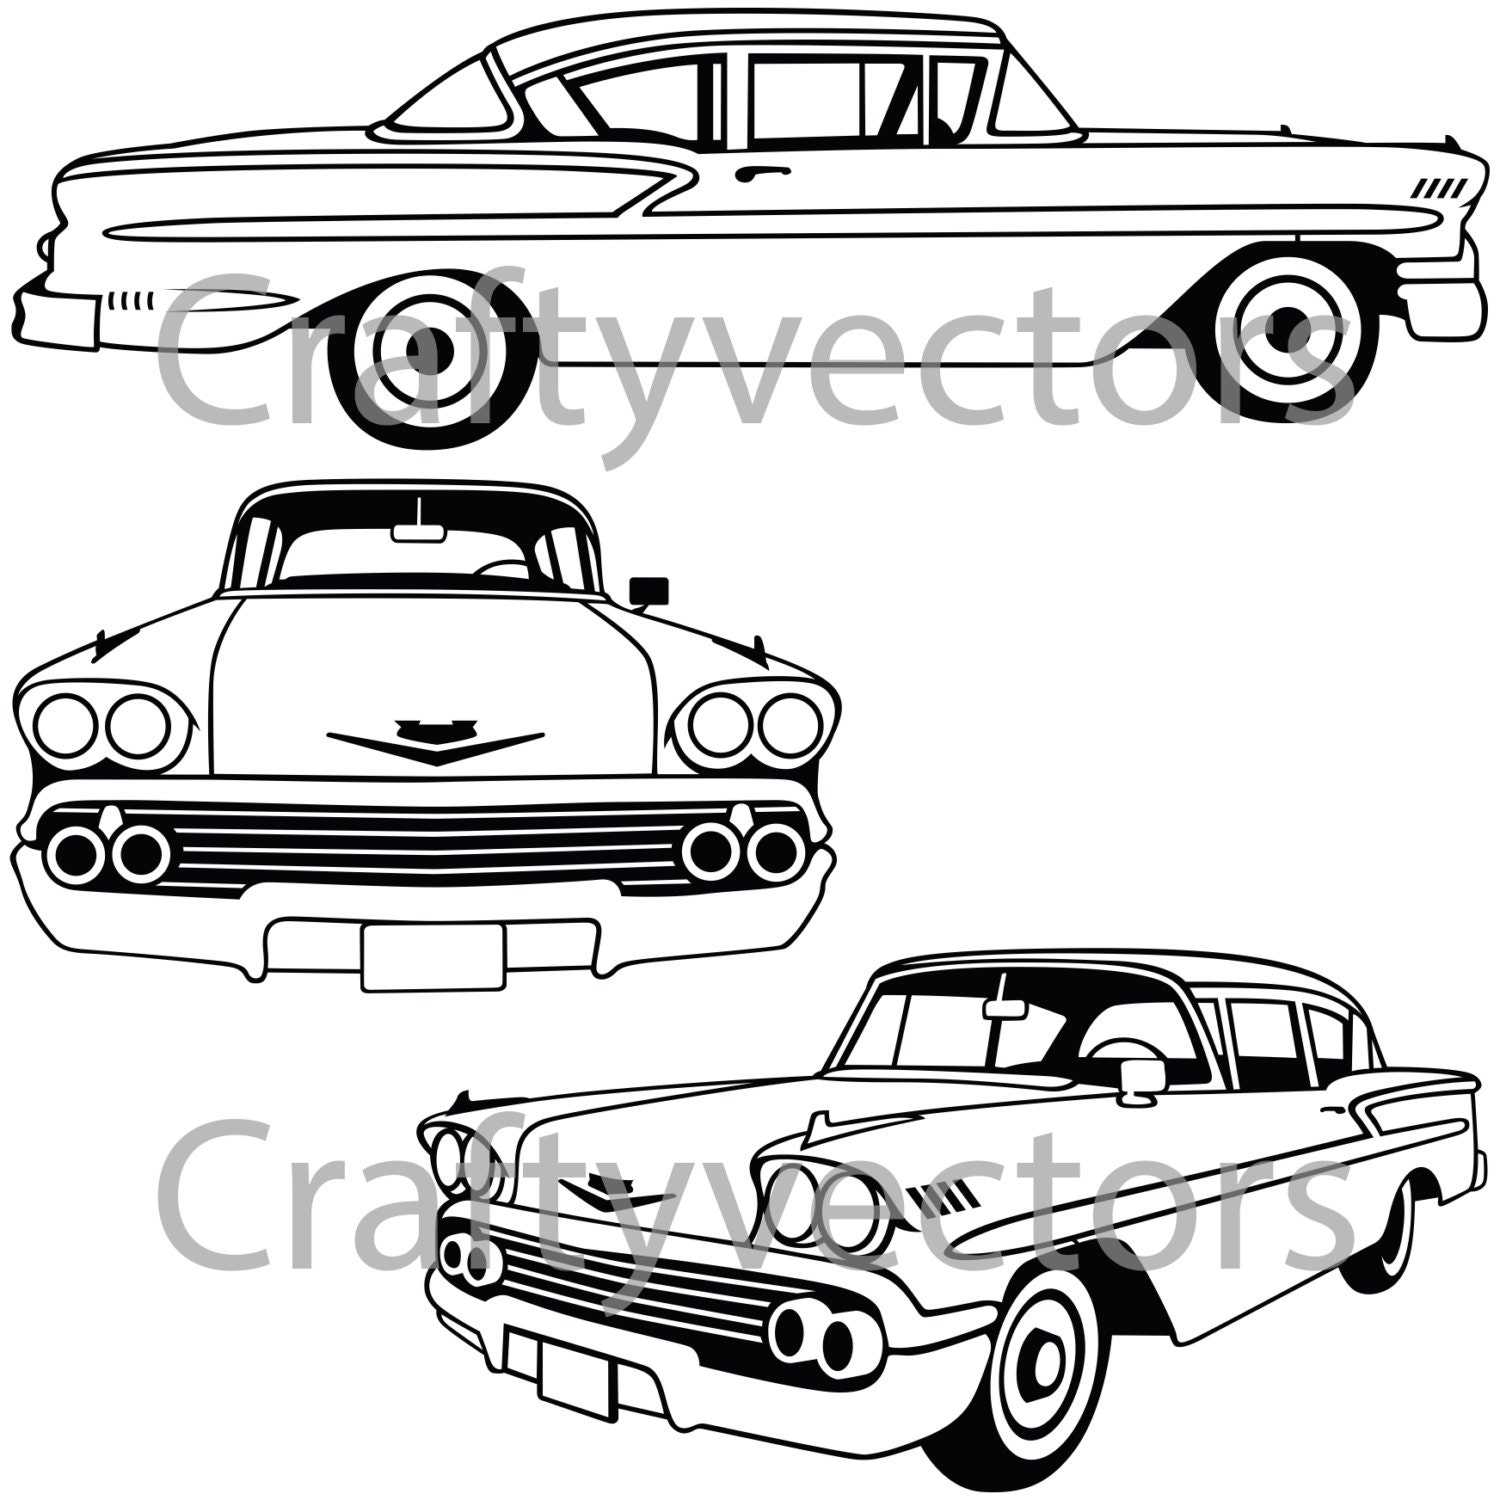 chevrolet bel air 1958 vector file etsy Geo Logo 50